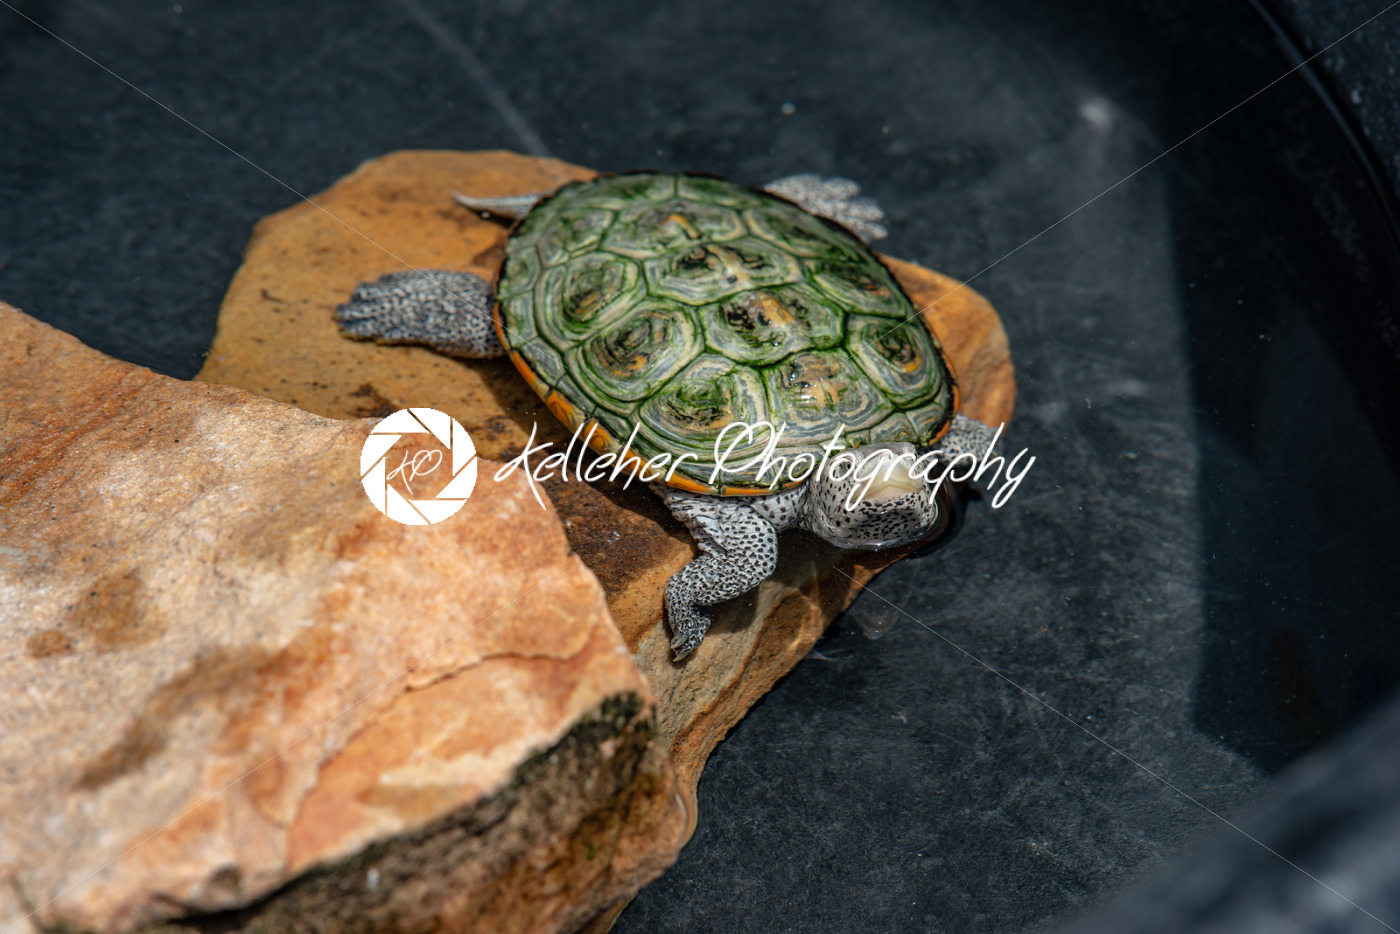 A Terrapin turtle on a rock - Kelleher Photography Store